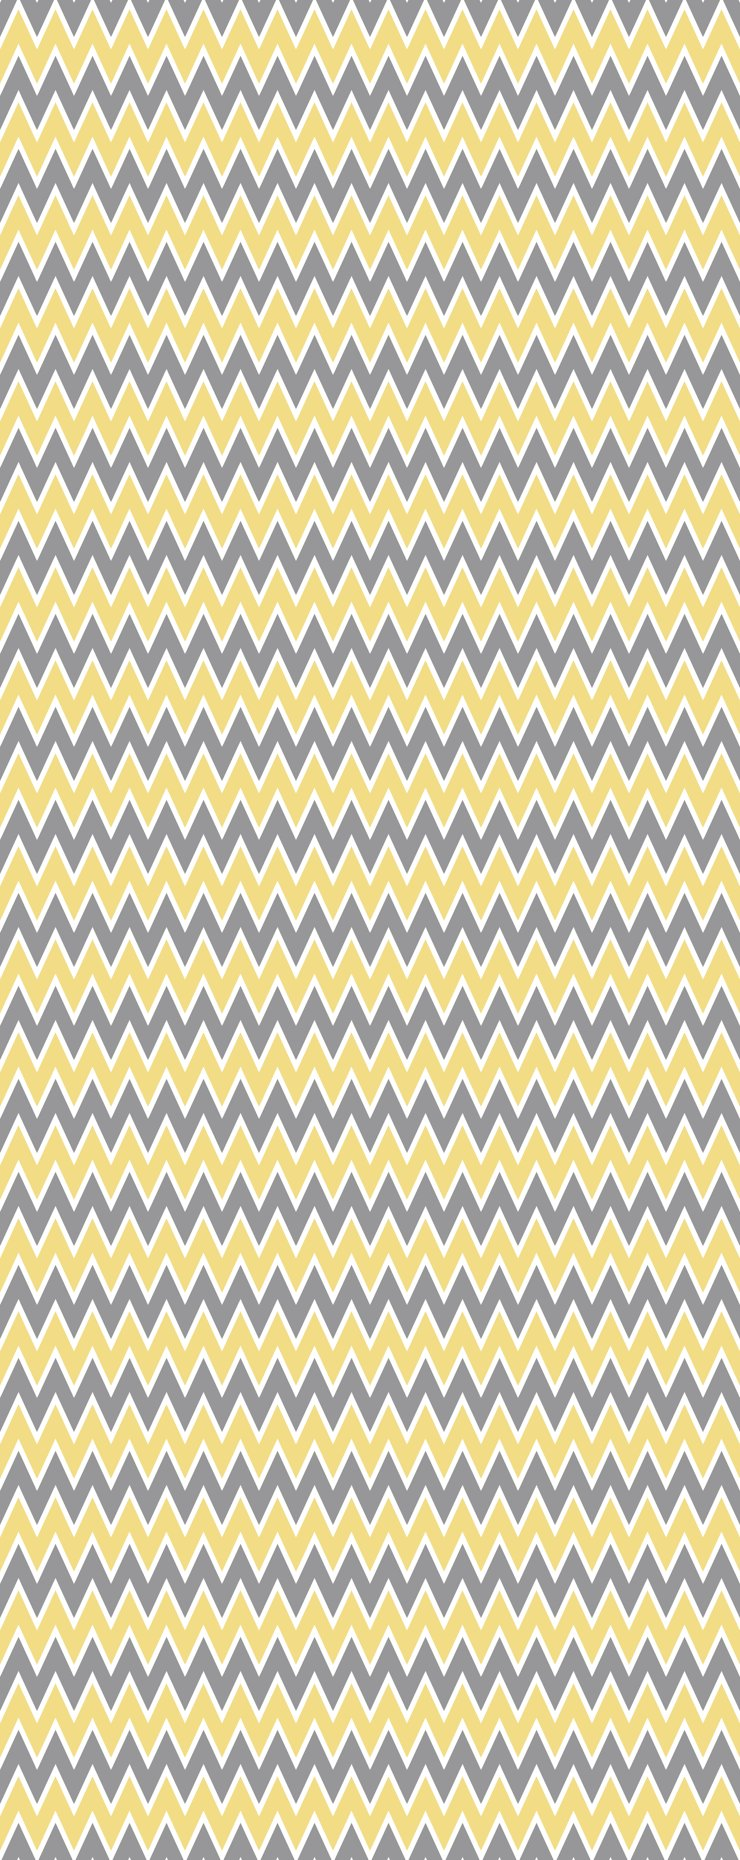 Rrrchevron_-_yellowgray_shop_preview